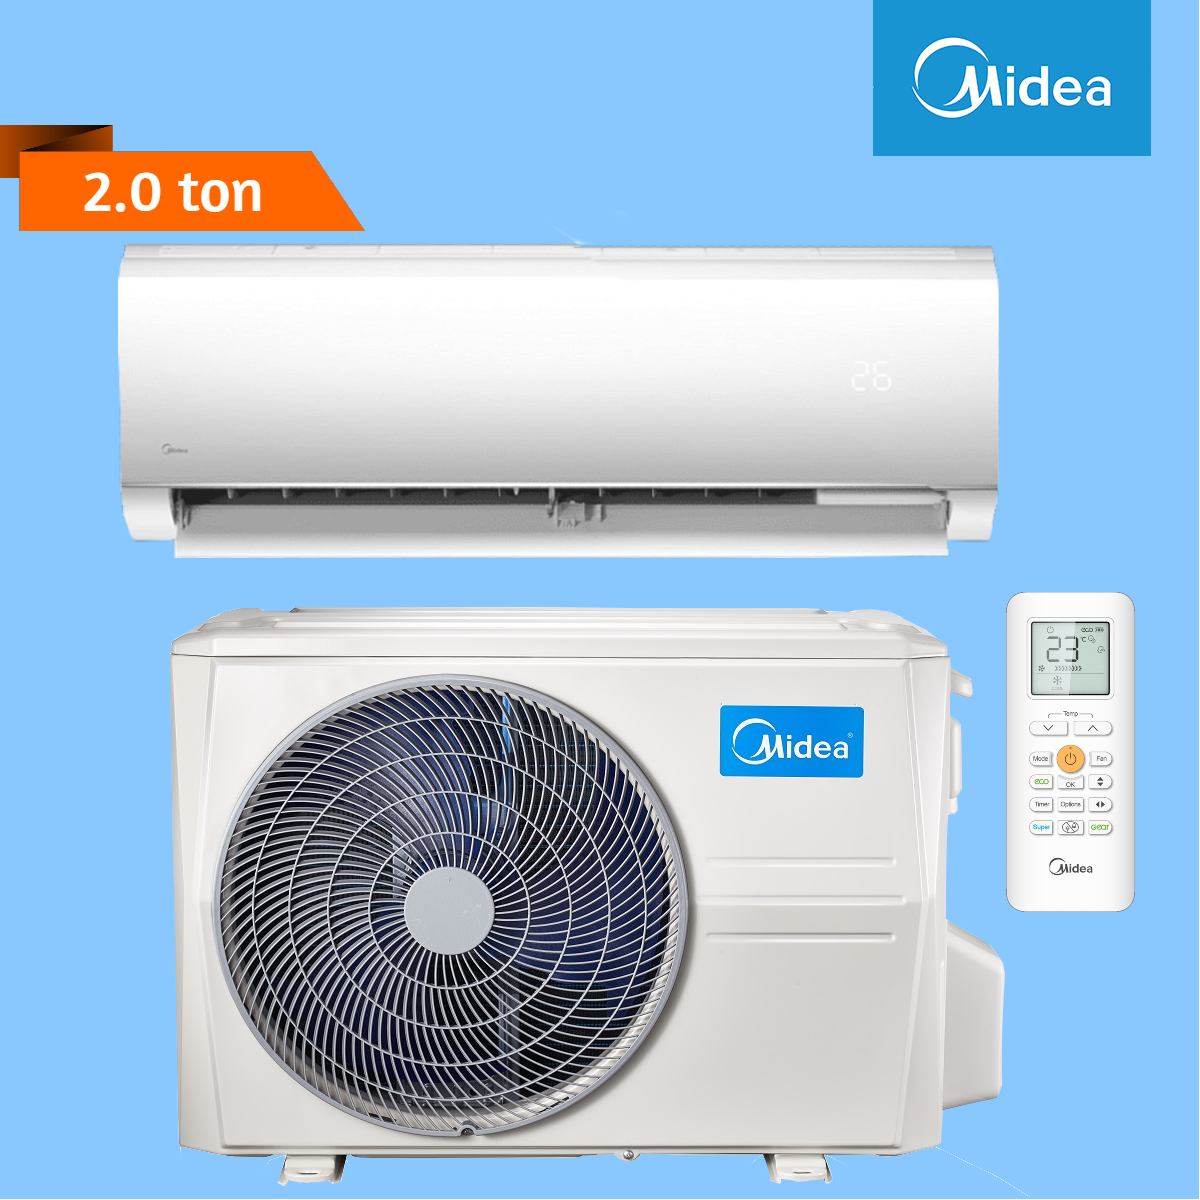 Midea Wall Mounted 2.0 Ton Air Conditioner (Blanc Series)